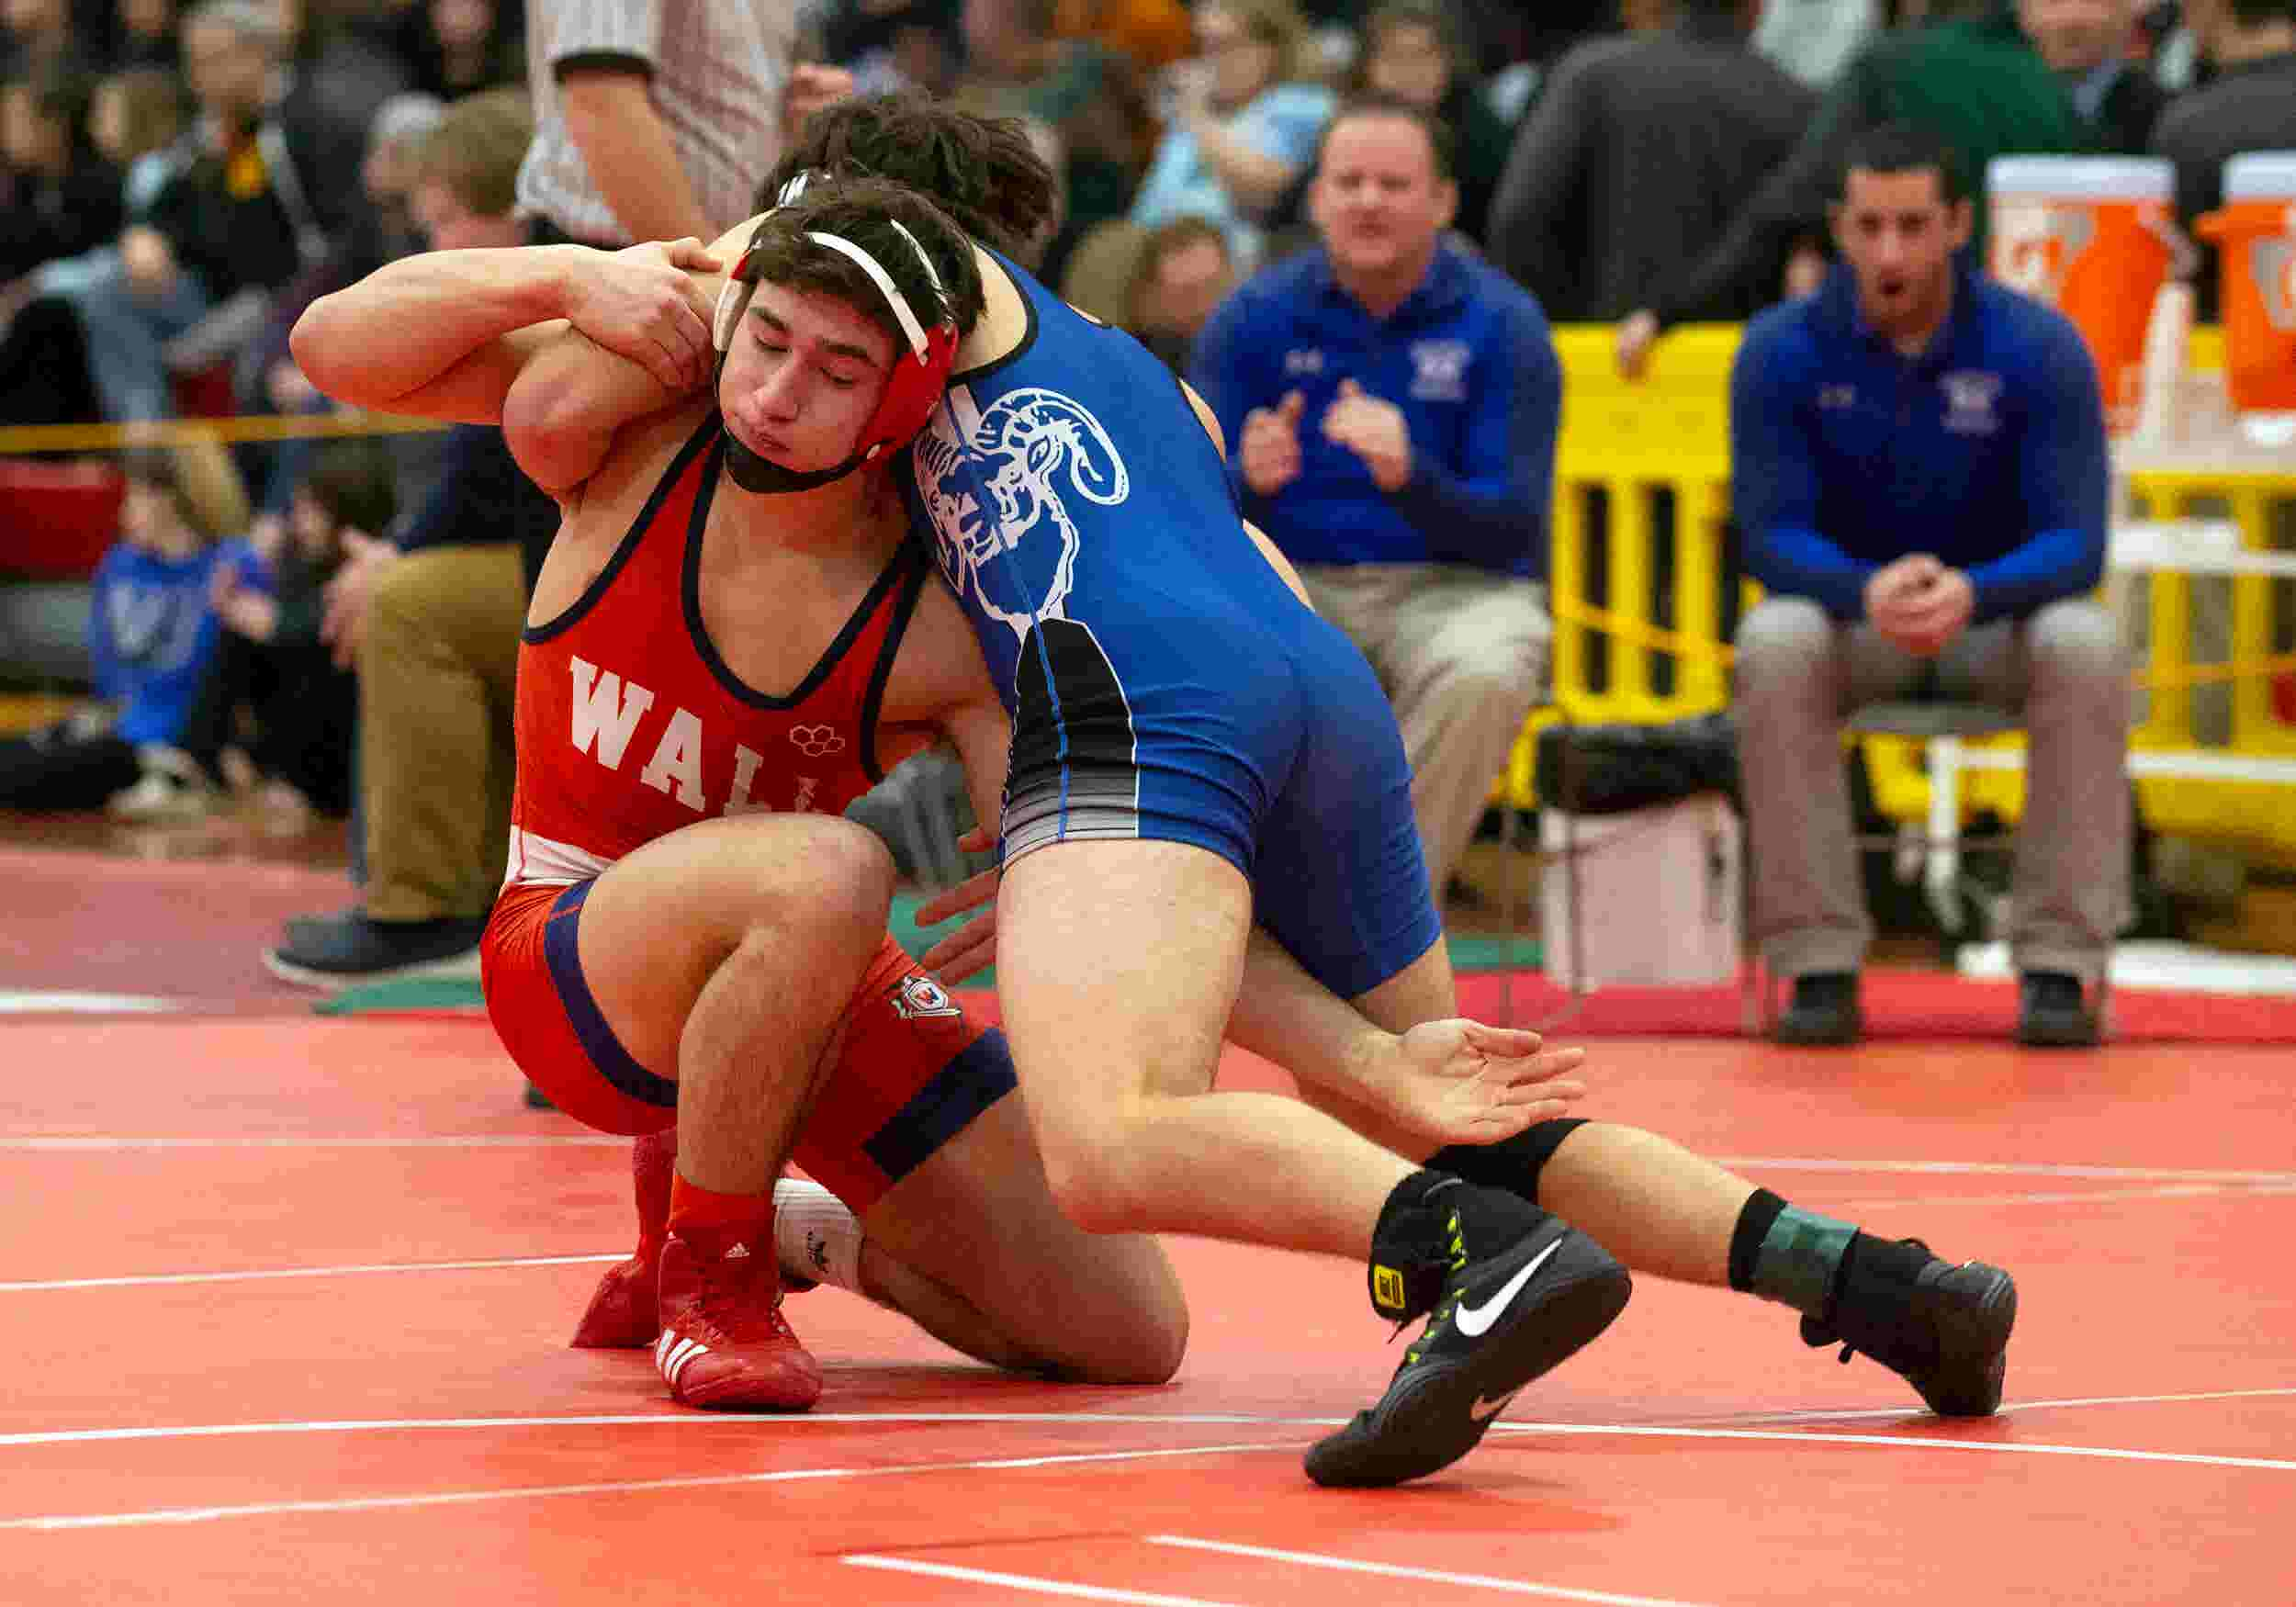 NJ wrestling: Robert Kanniard of Wall is ready for final shot at a state  championship